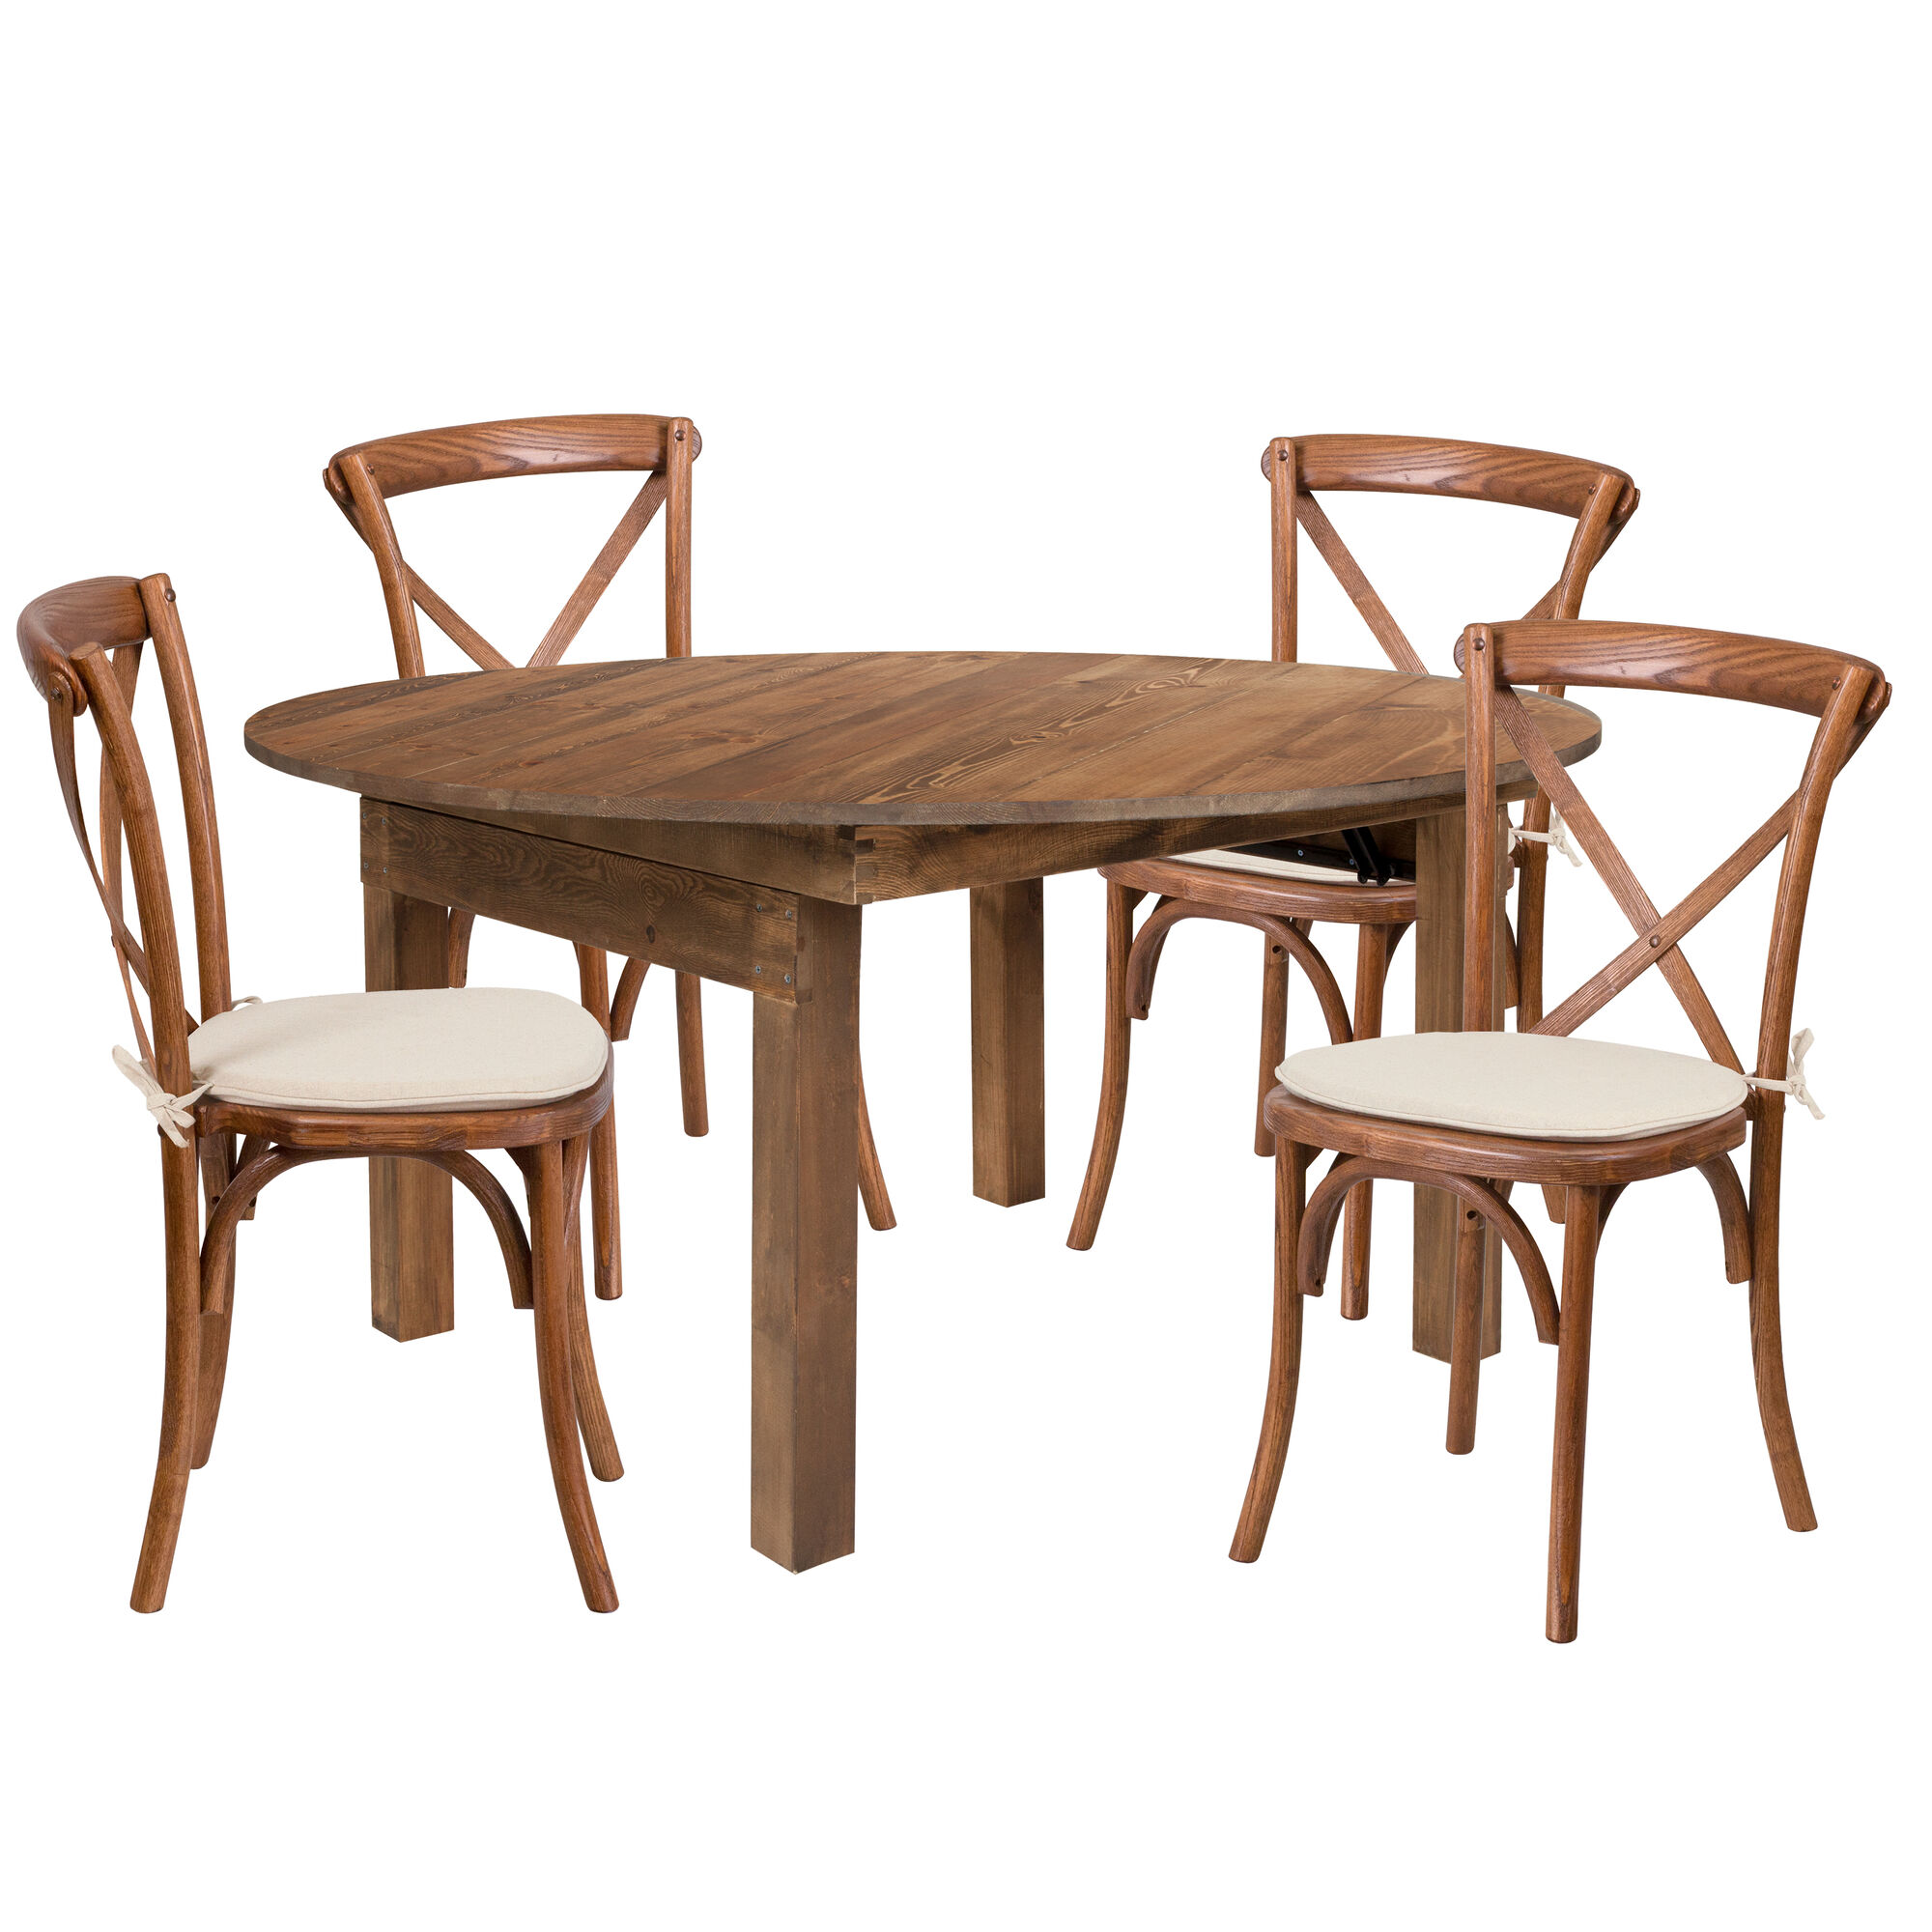 Awesome Hercules Series 5 Foot Round Solid Pine Folding Farm Dining Table Set With 4 Cross Back Chairs And Cushions Download Free Architecture Designs Xoliawazosbritishbridgeorg